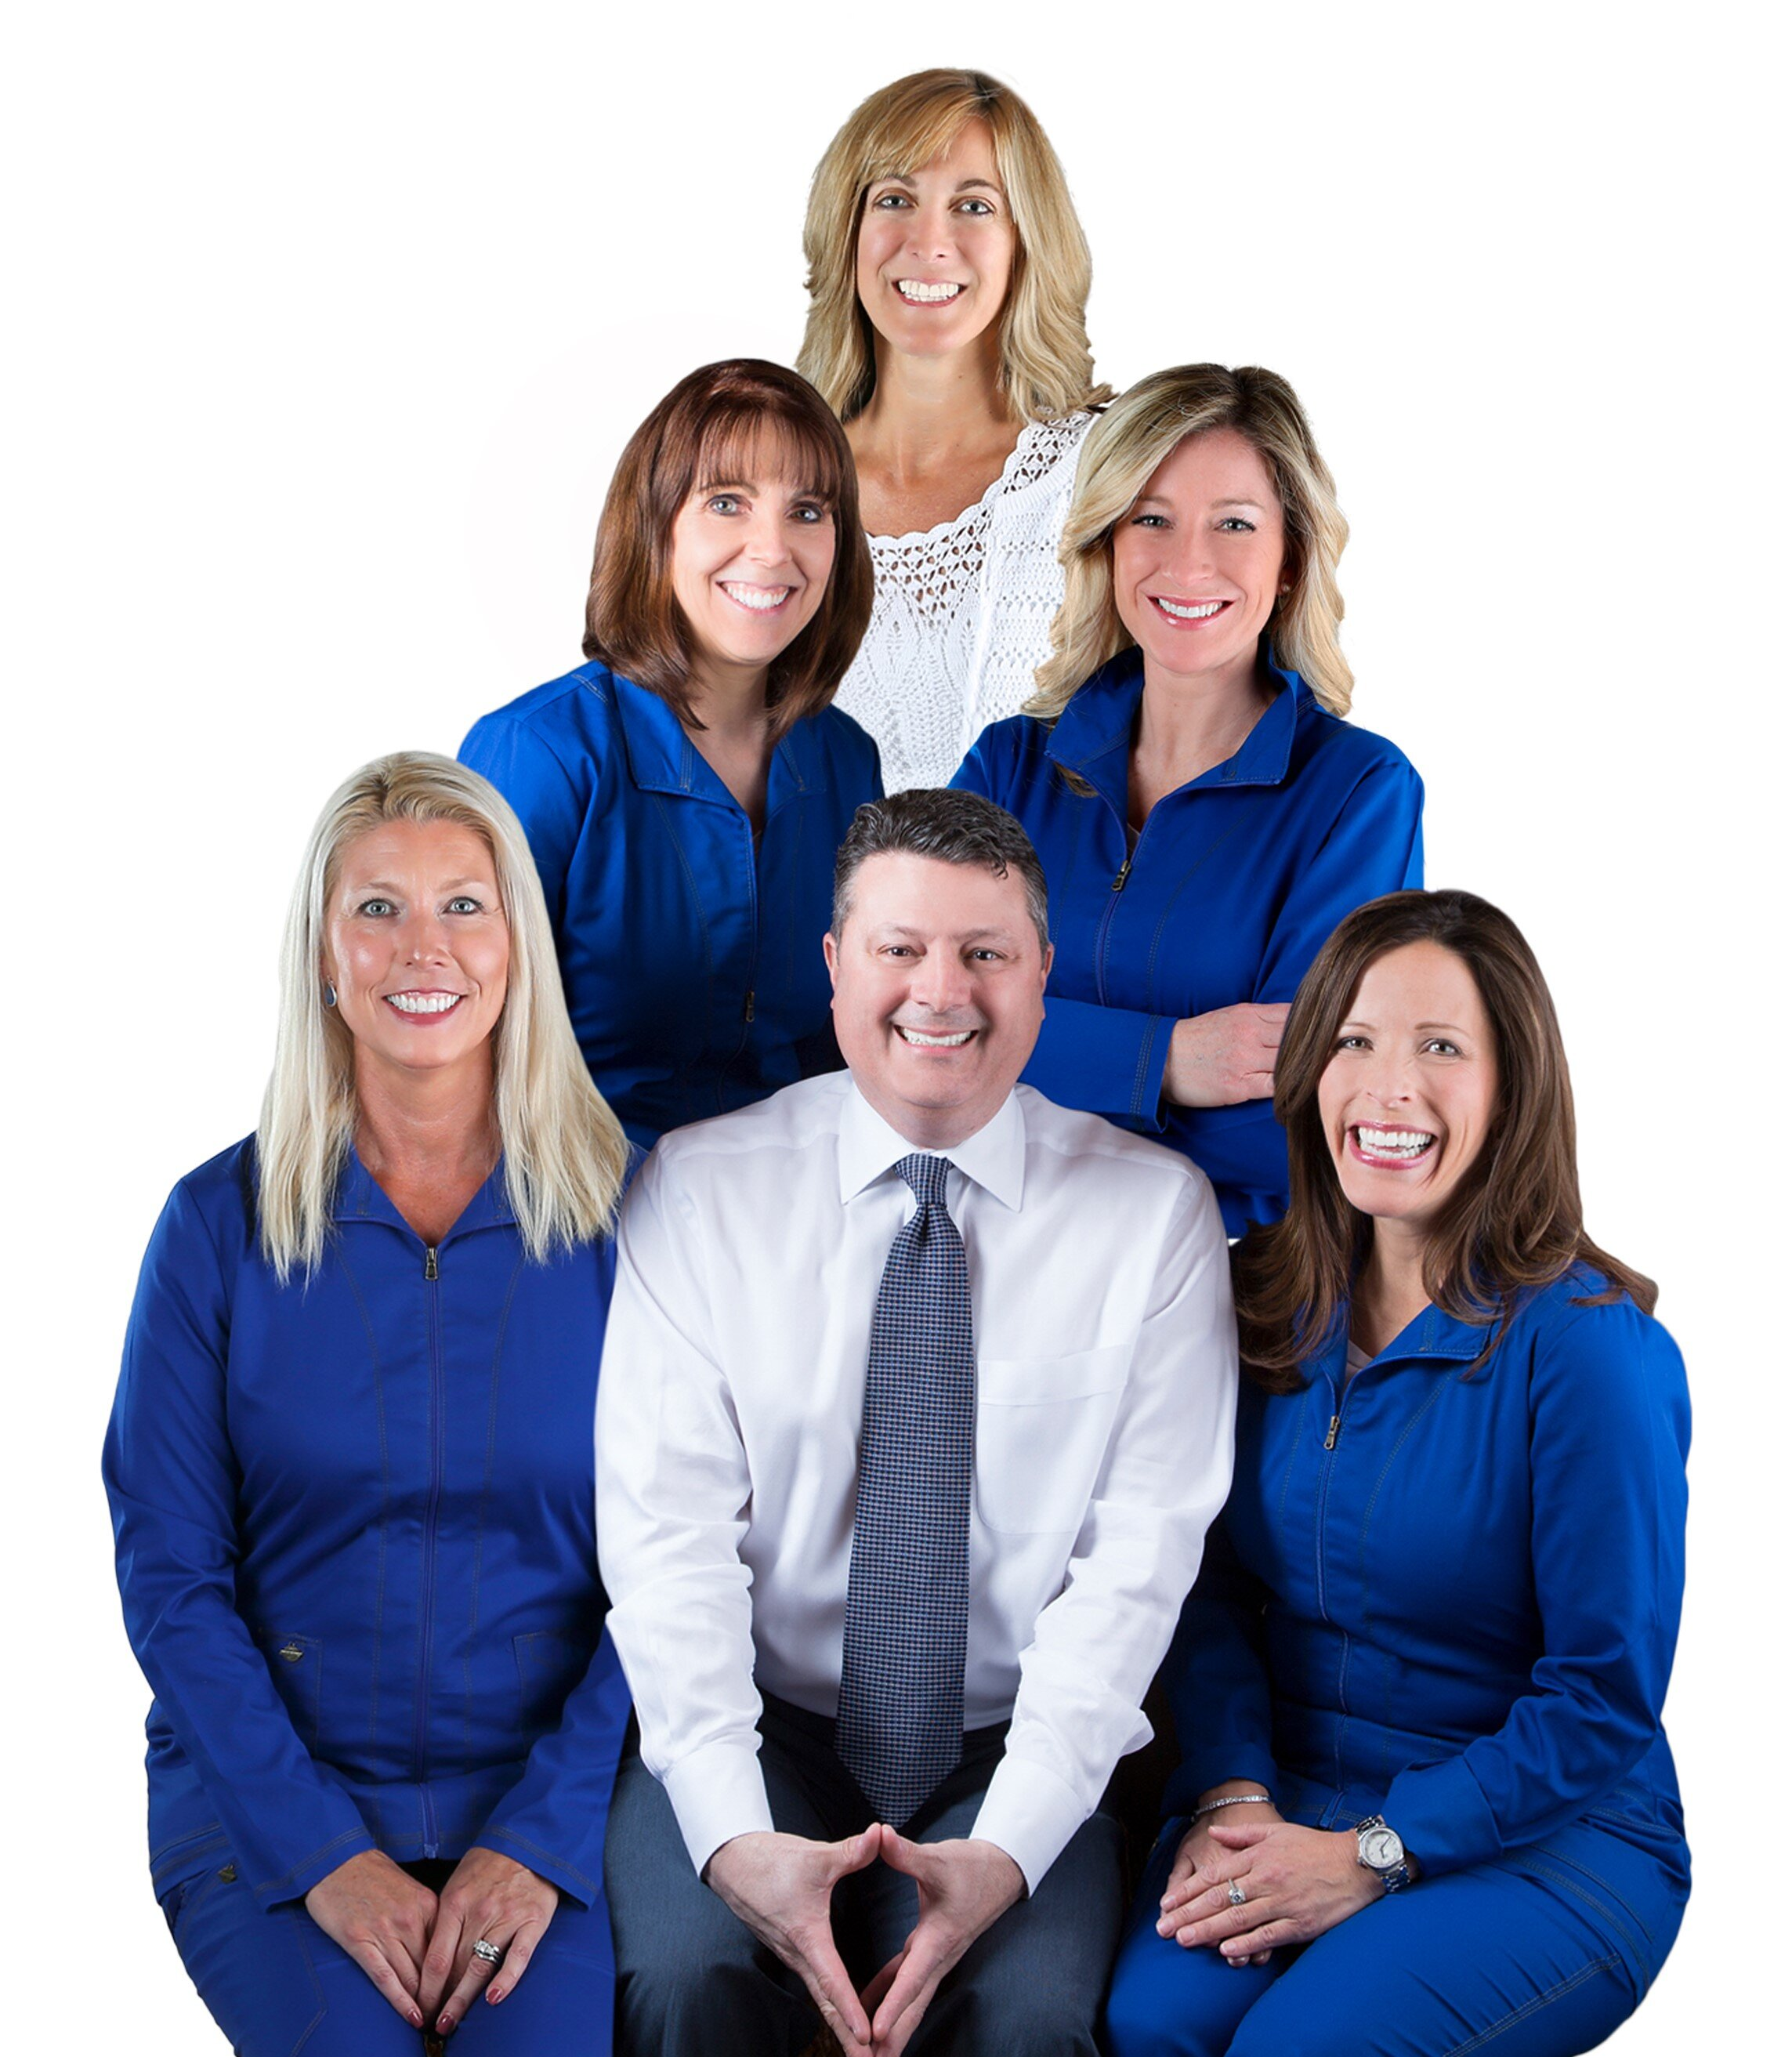 Dr. Nick and his exceptional team